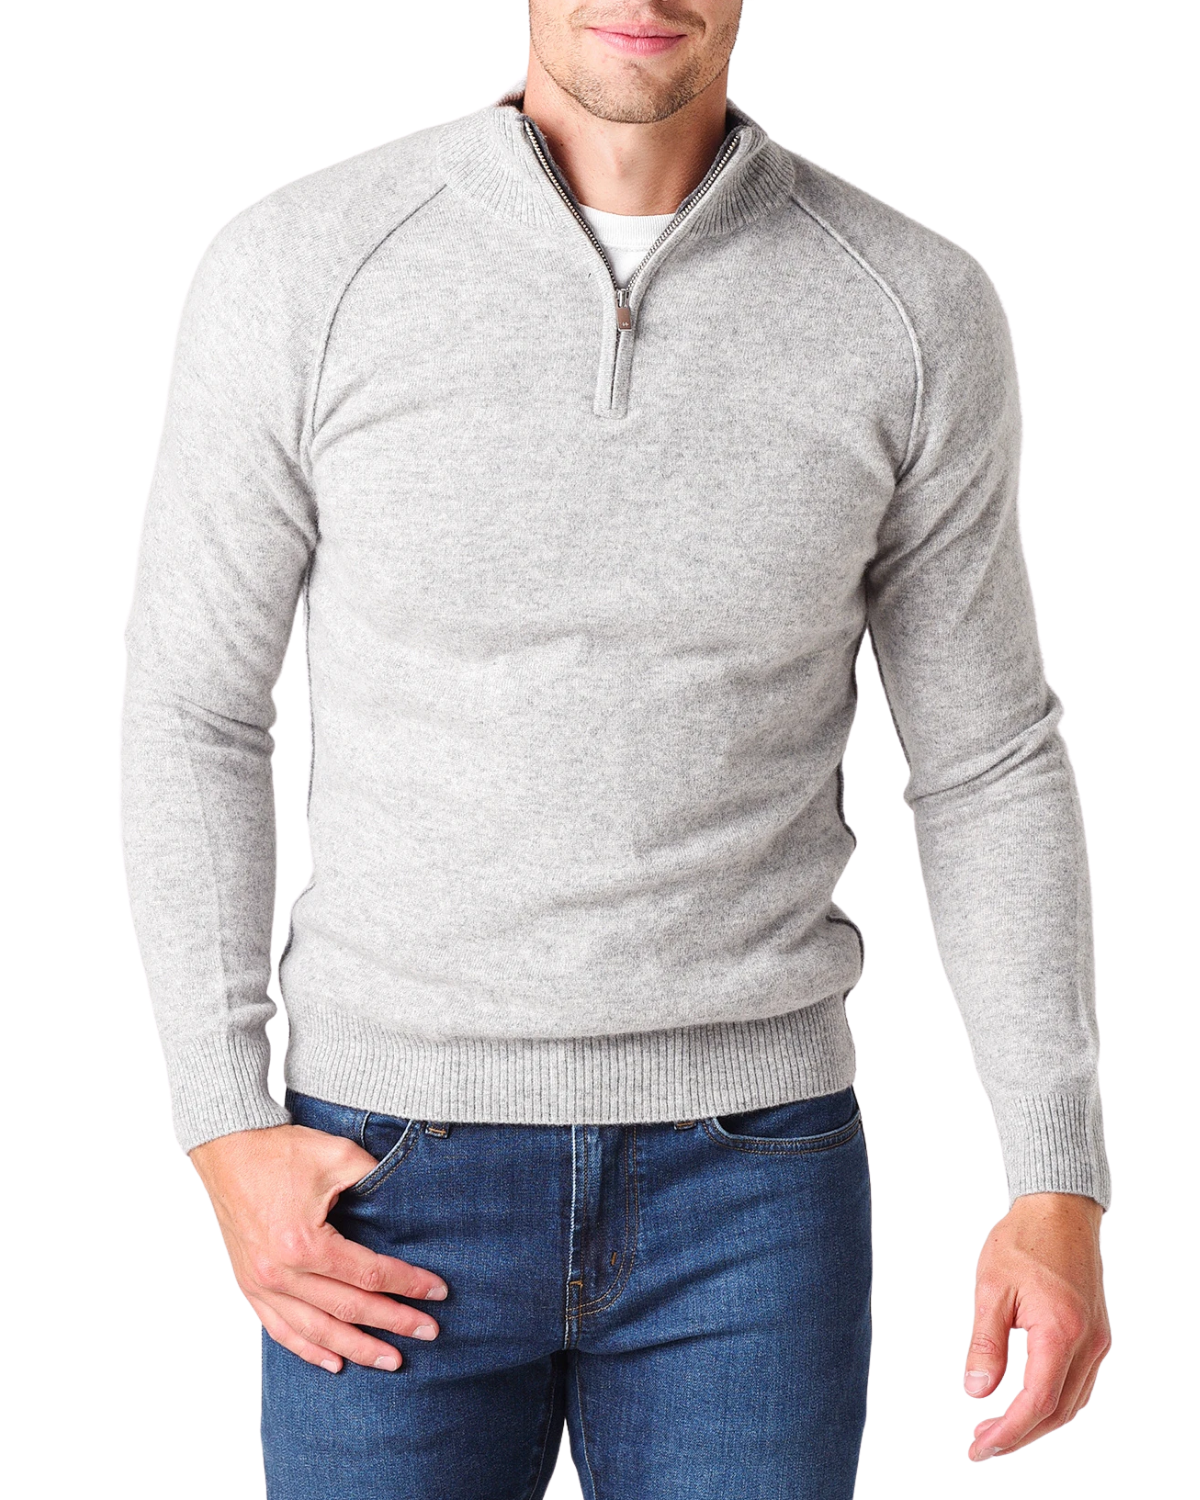 Quarter Zip Cashmere Raglan - Cement/White